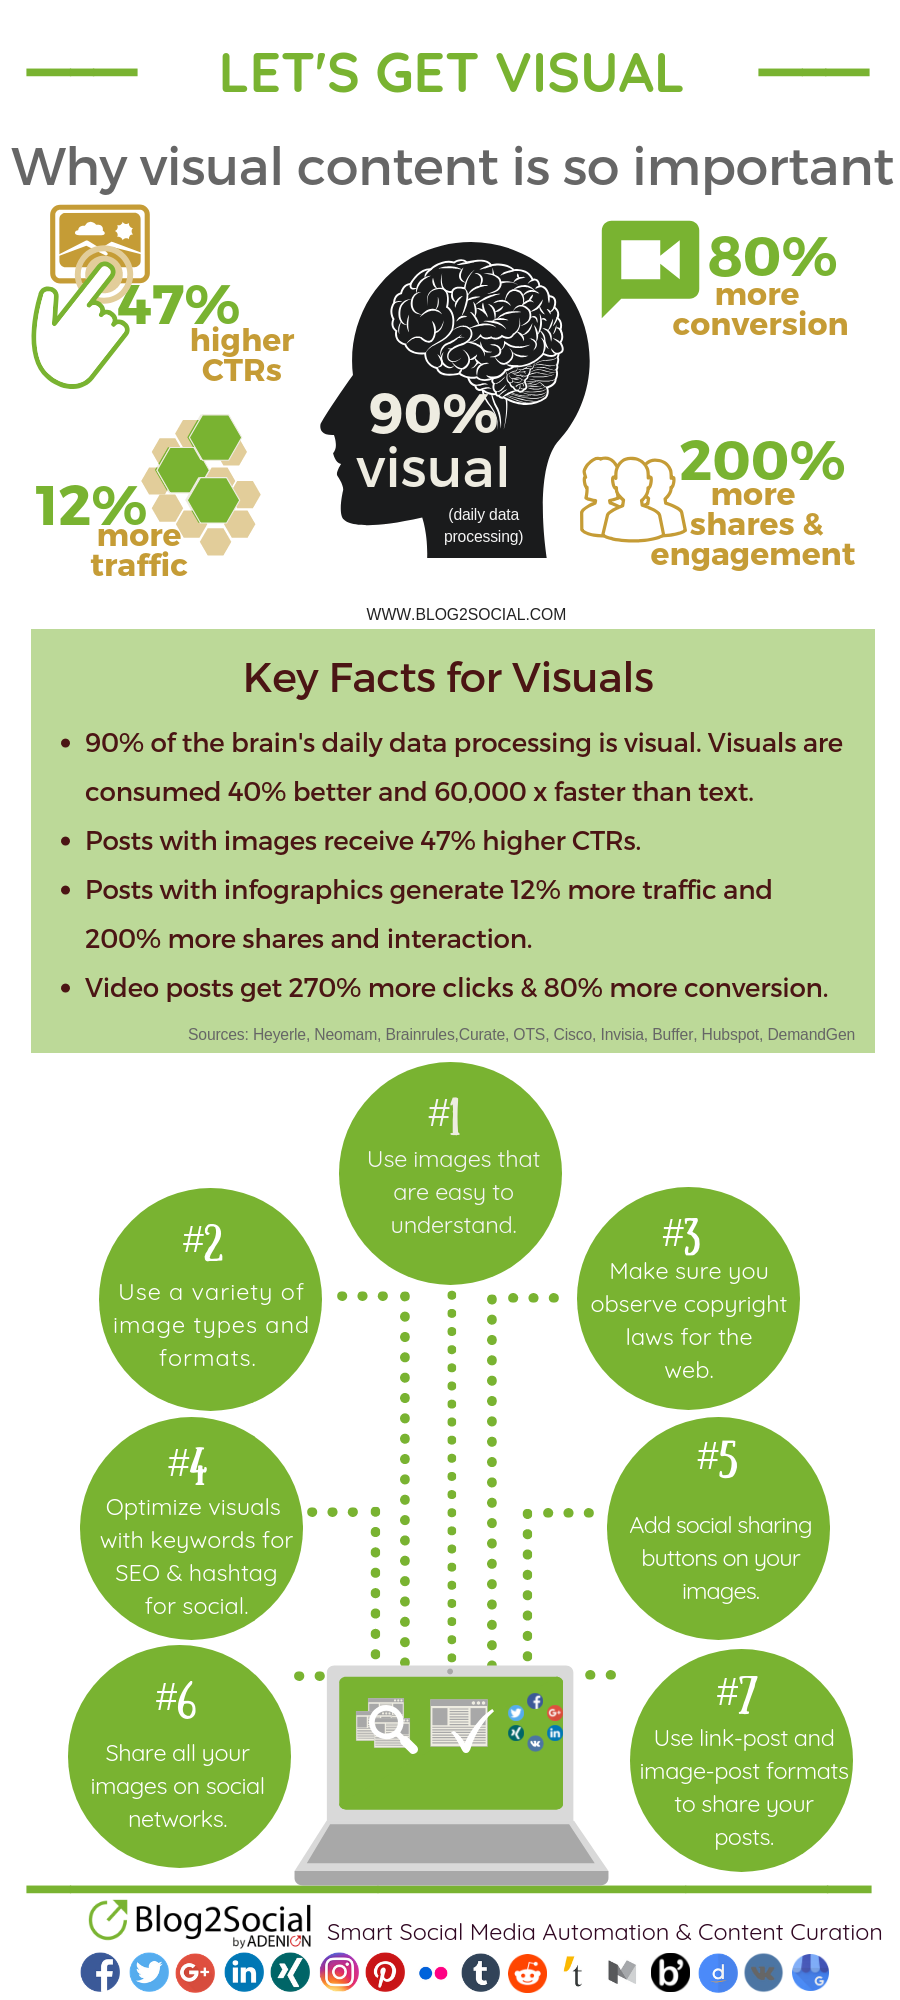 Why visuals are important for your content marketing success